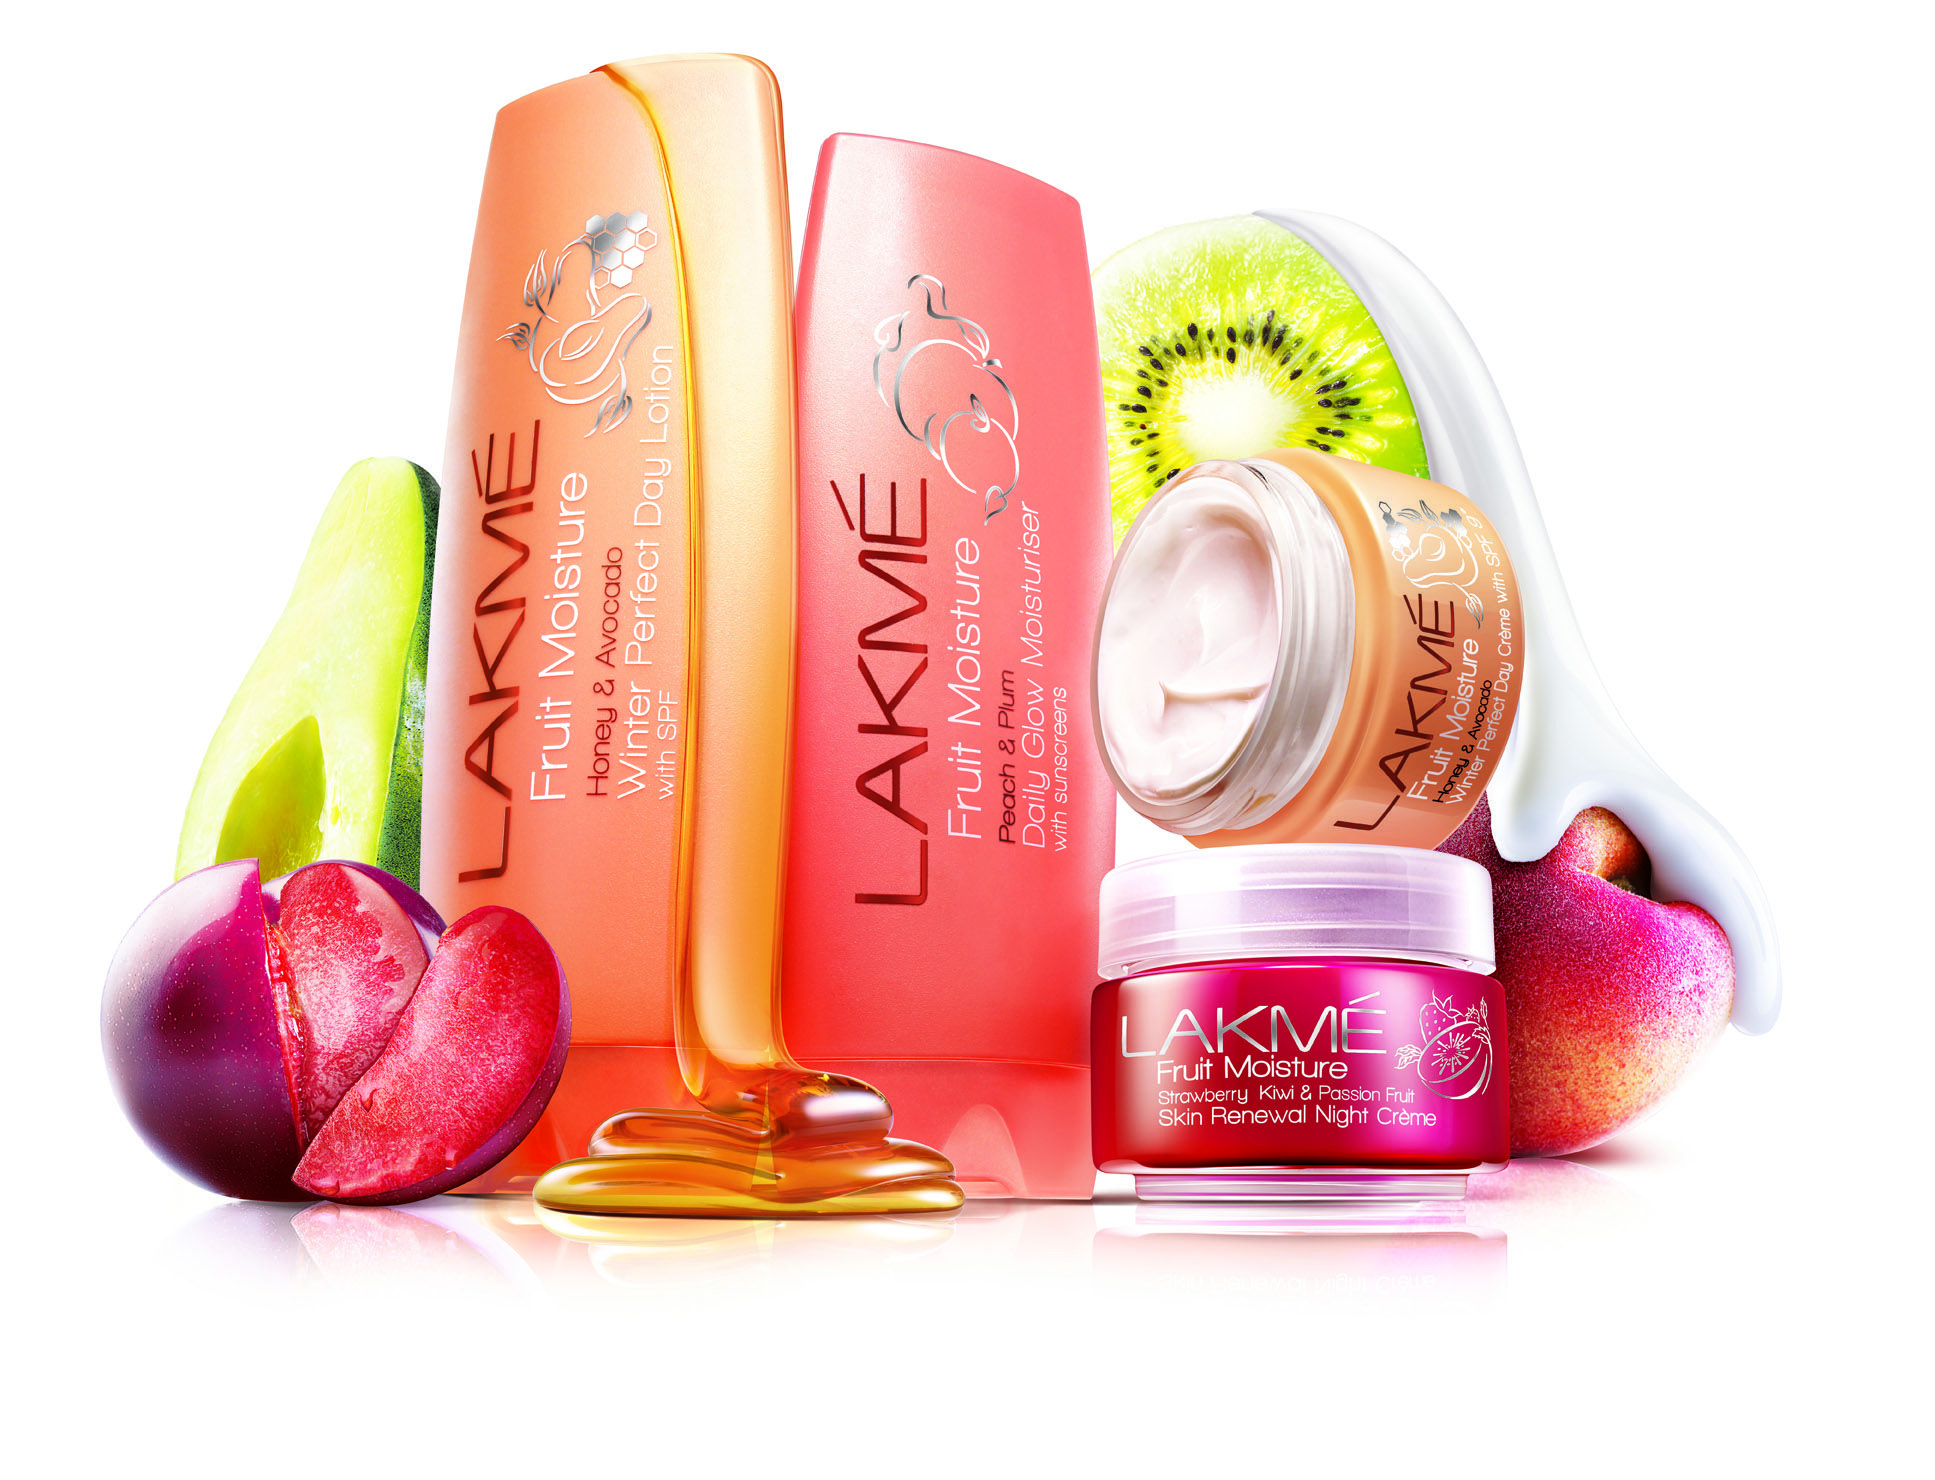 French Products Lakme Cosmetics Usa Cosmetics Perfume Makeup Lakme